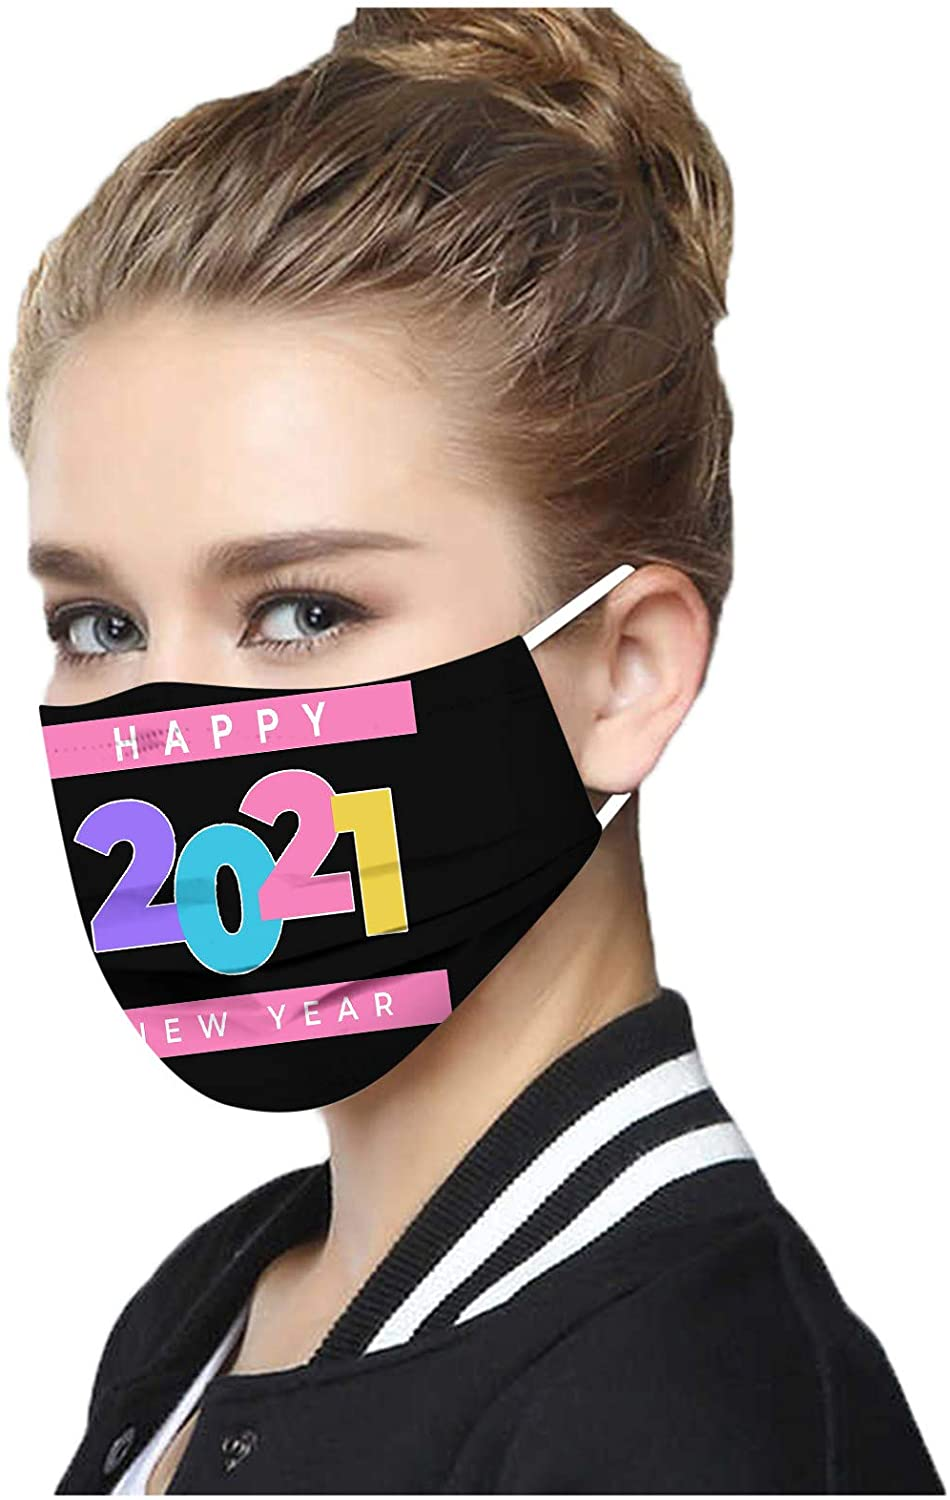 10PC Disposable MÀsk, 2021 Happy New Year Adult Face Covering Protection Personal Protective Face Shield, for Running, Cycling, Outdoor Activities for Men and Women Filters (B)